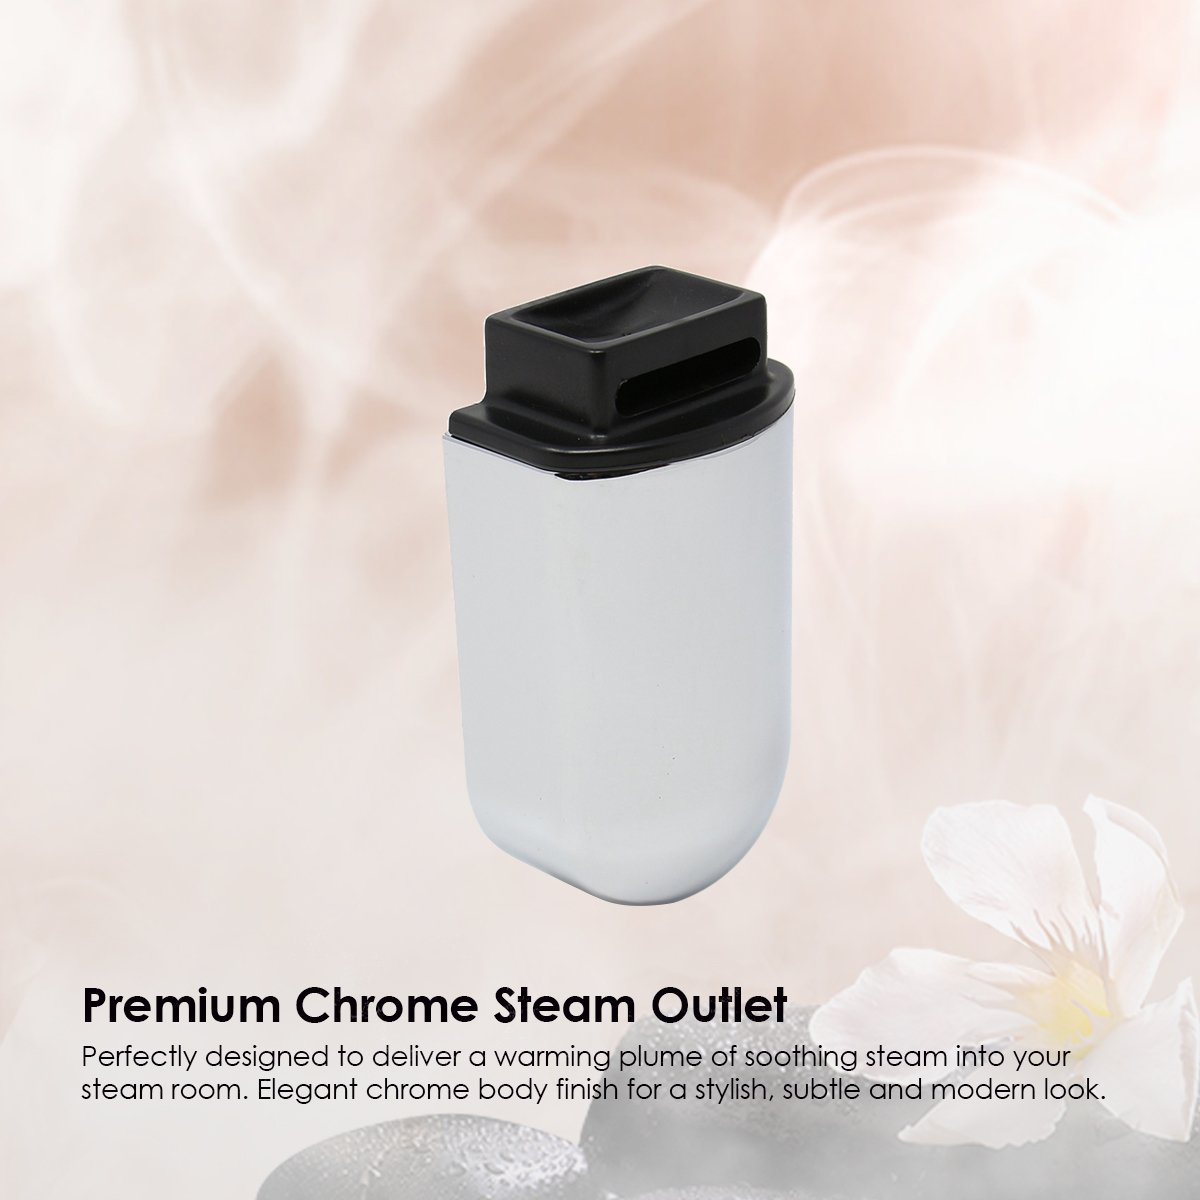 Chrome Steam Outlet